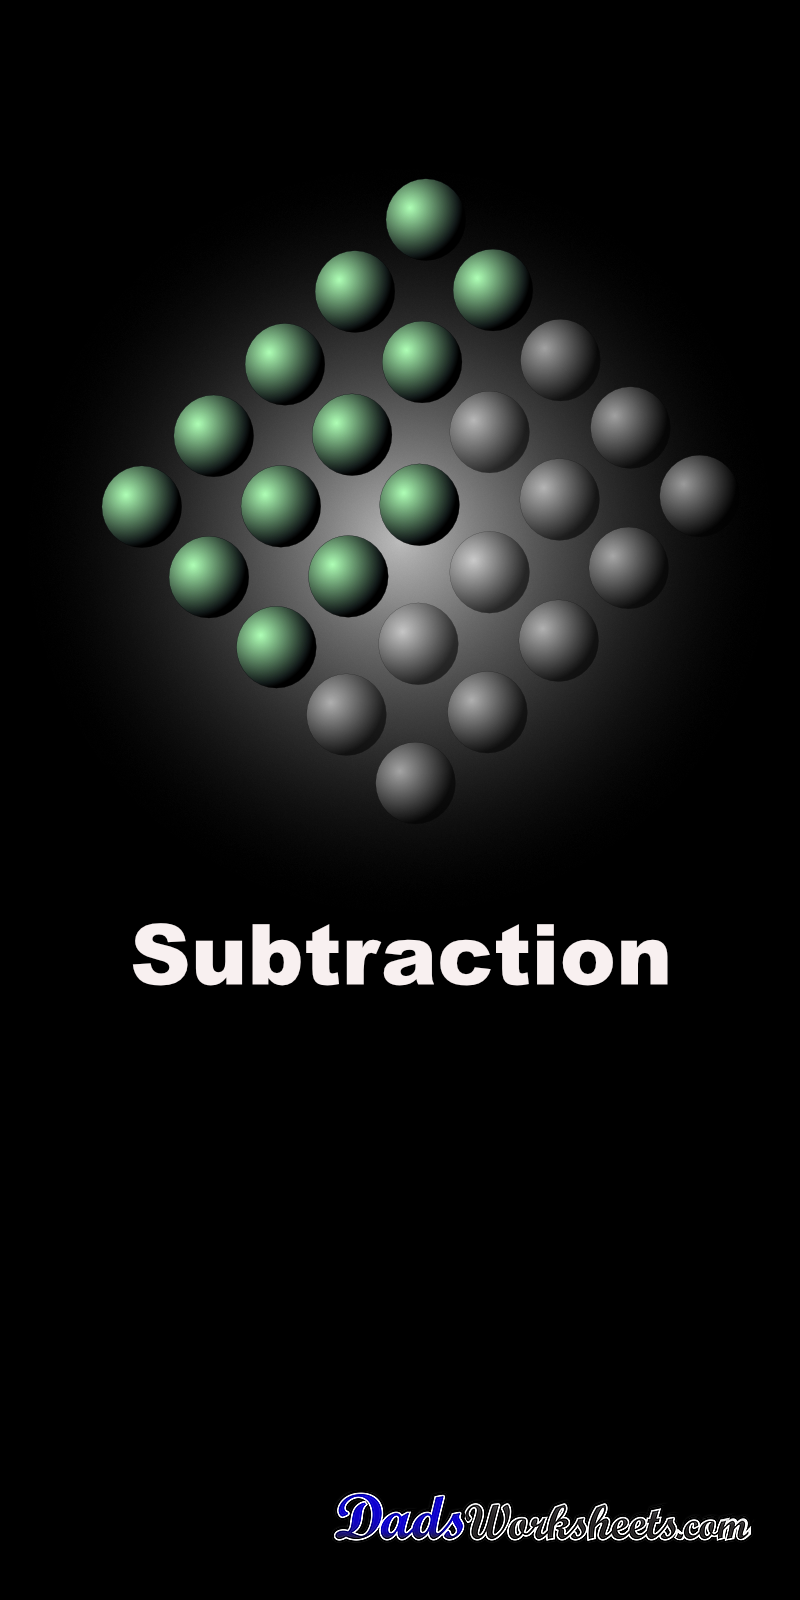 subtraction worksheets for you to print right now no signup or  no signup or registration just print and use in the classroom or at home  thousands of other free worksheets for many math topics